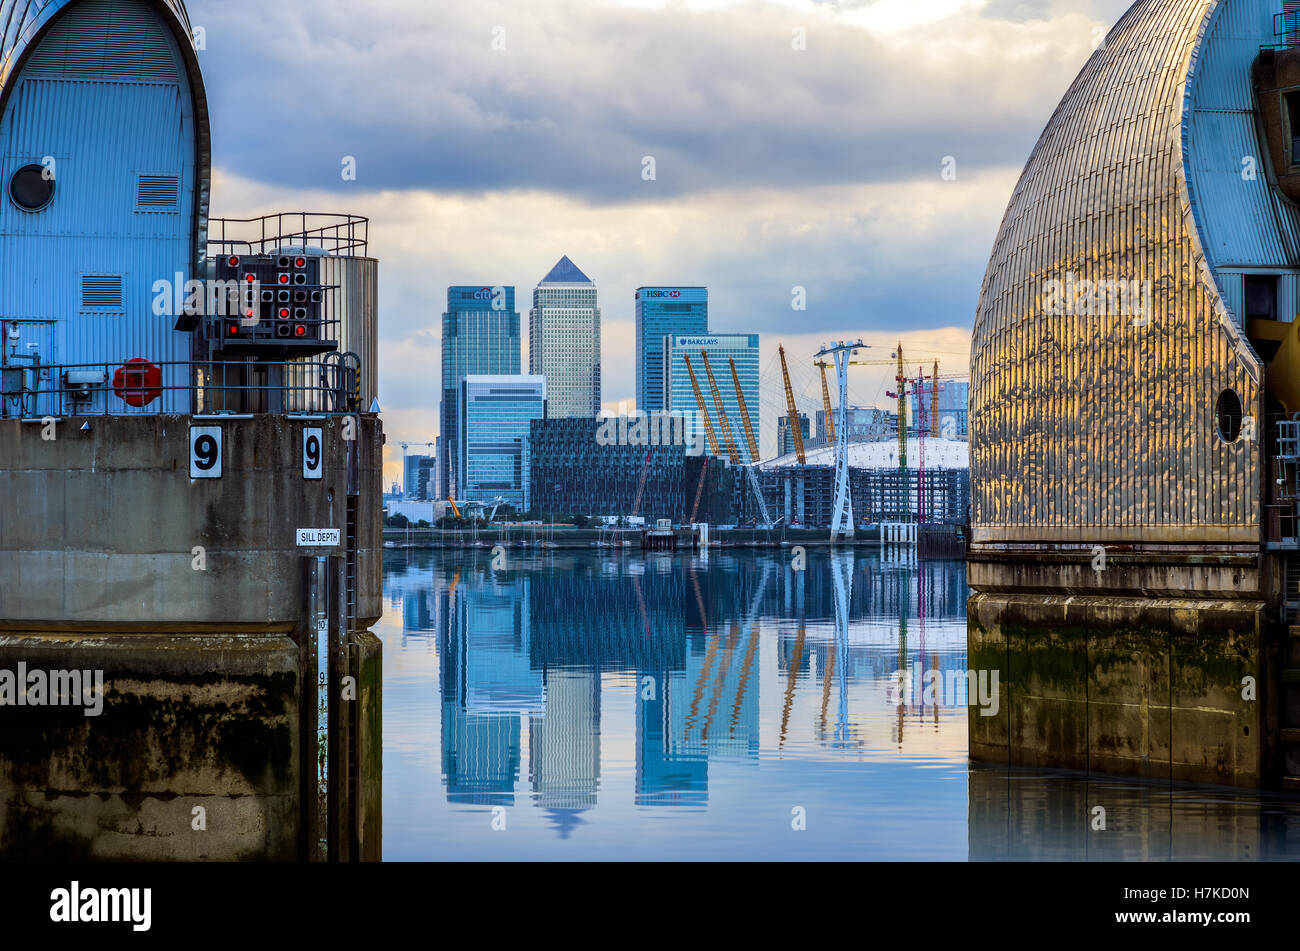 London, UK - August 31, 2016 - View of Canary Wharf and O2 Arena from Thames Barrier - Stock Image